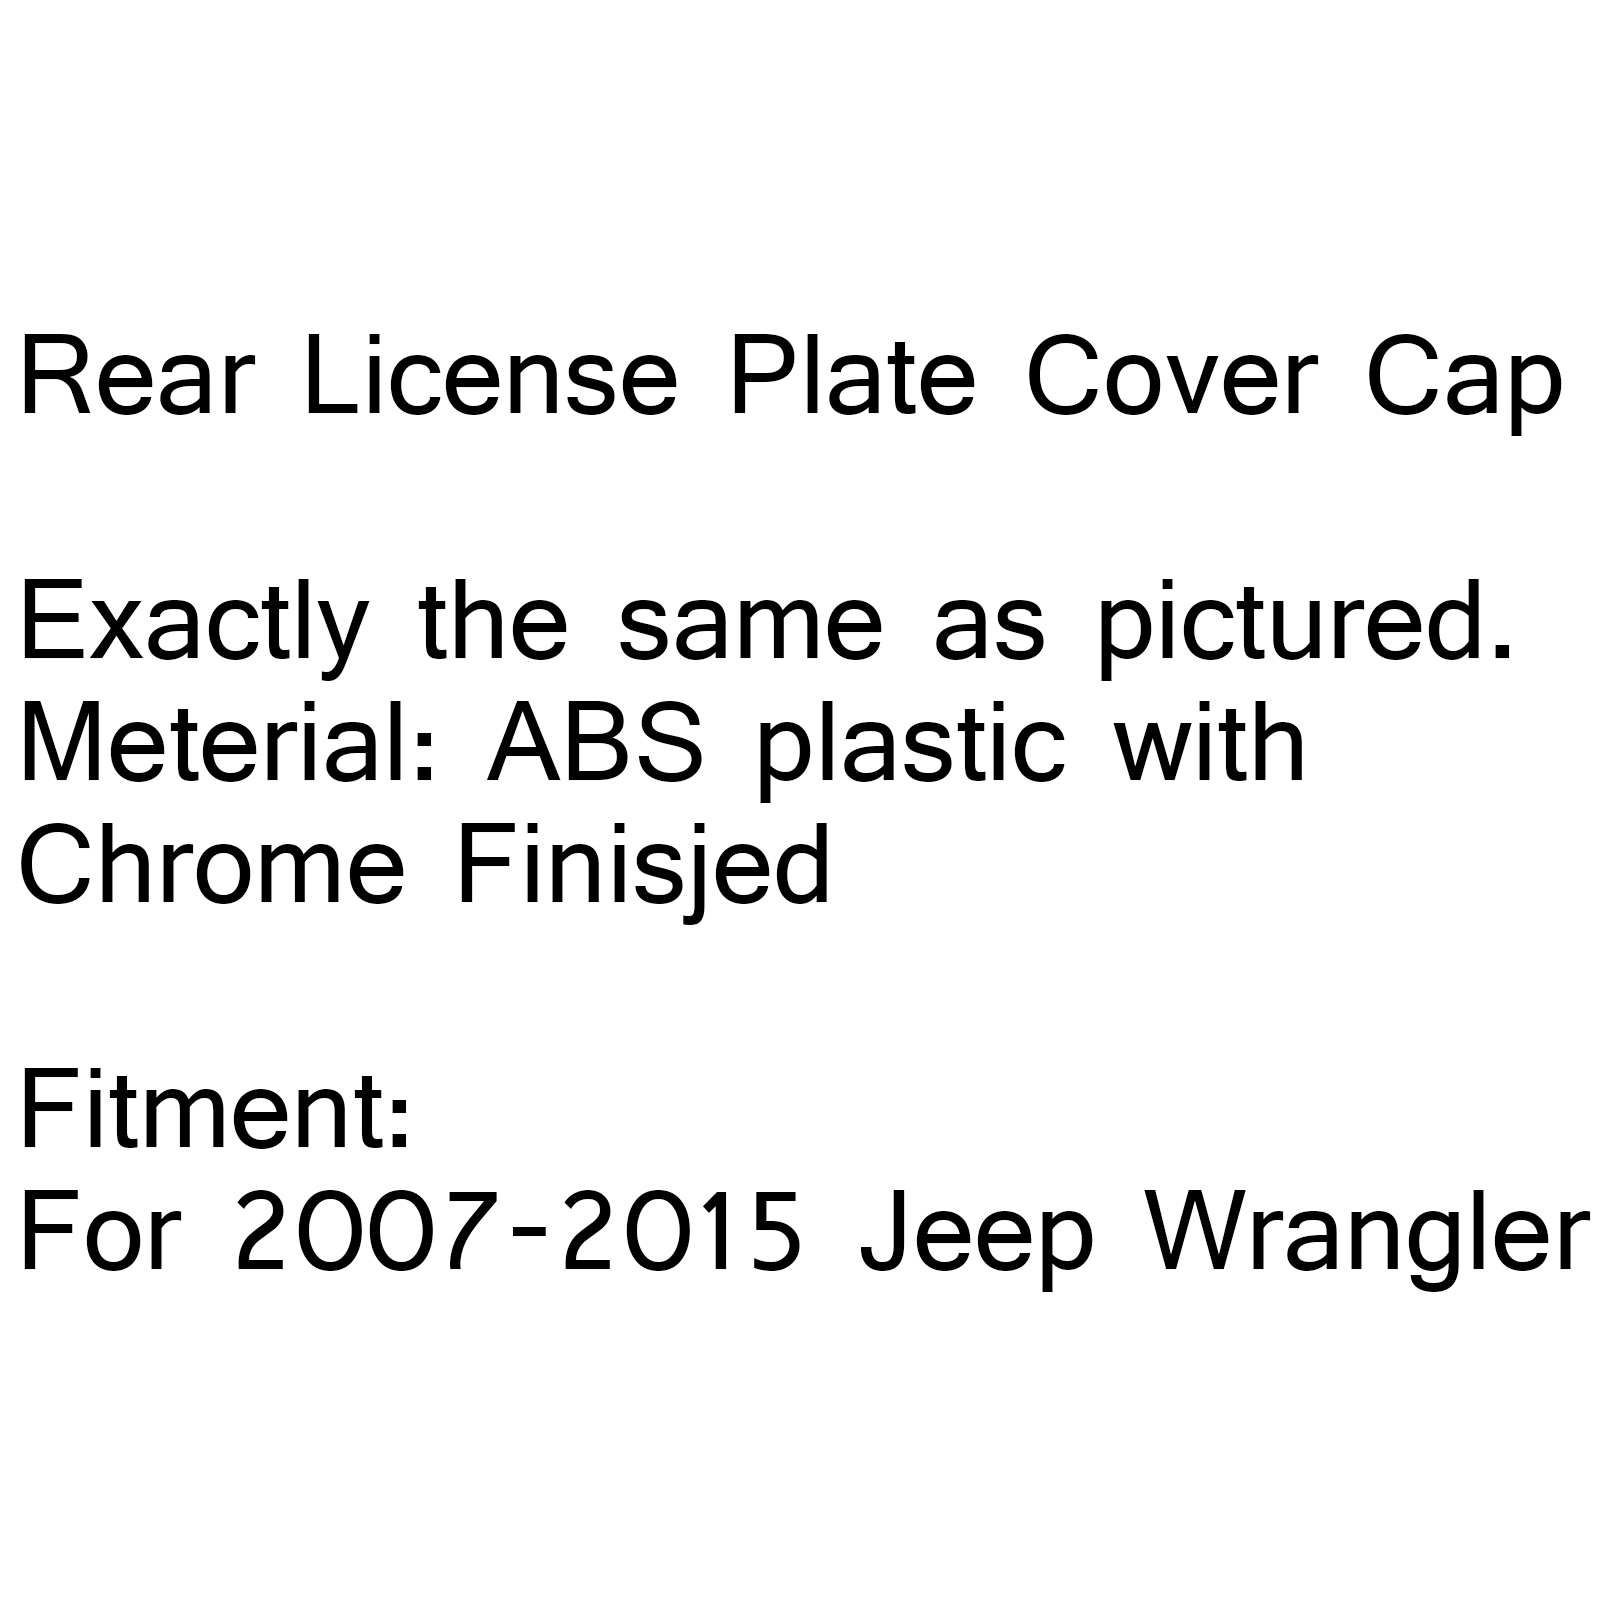 272354338238 besides Wj Fuel Filter Line Broken 1525900 likewise Jeep wrangler front suspension diagram likewise Wiper Relay For 2001 Ford F150 furthermore Jeep  mander Parts Catalog. on jeep jk gas tank